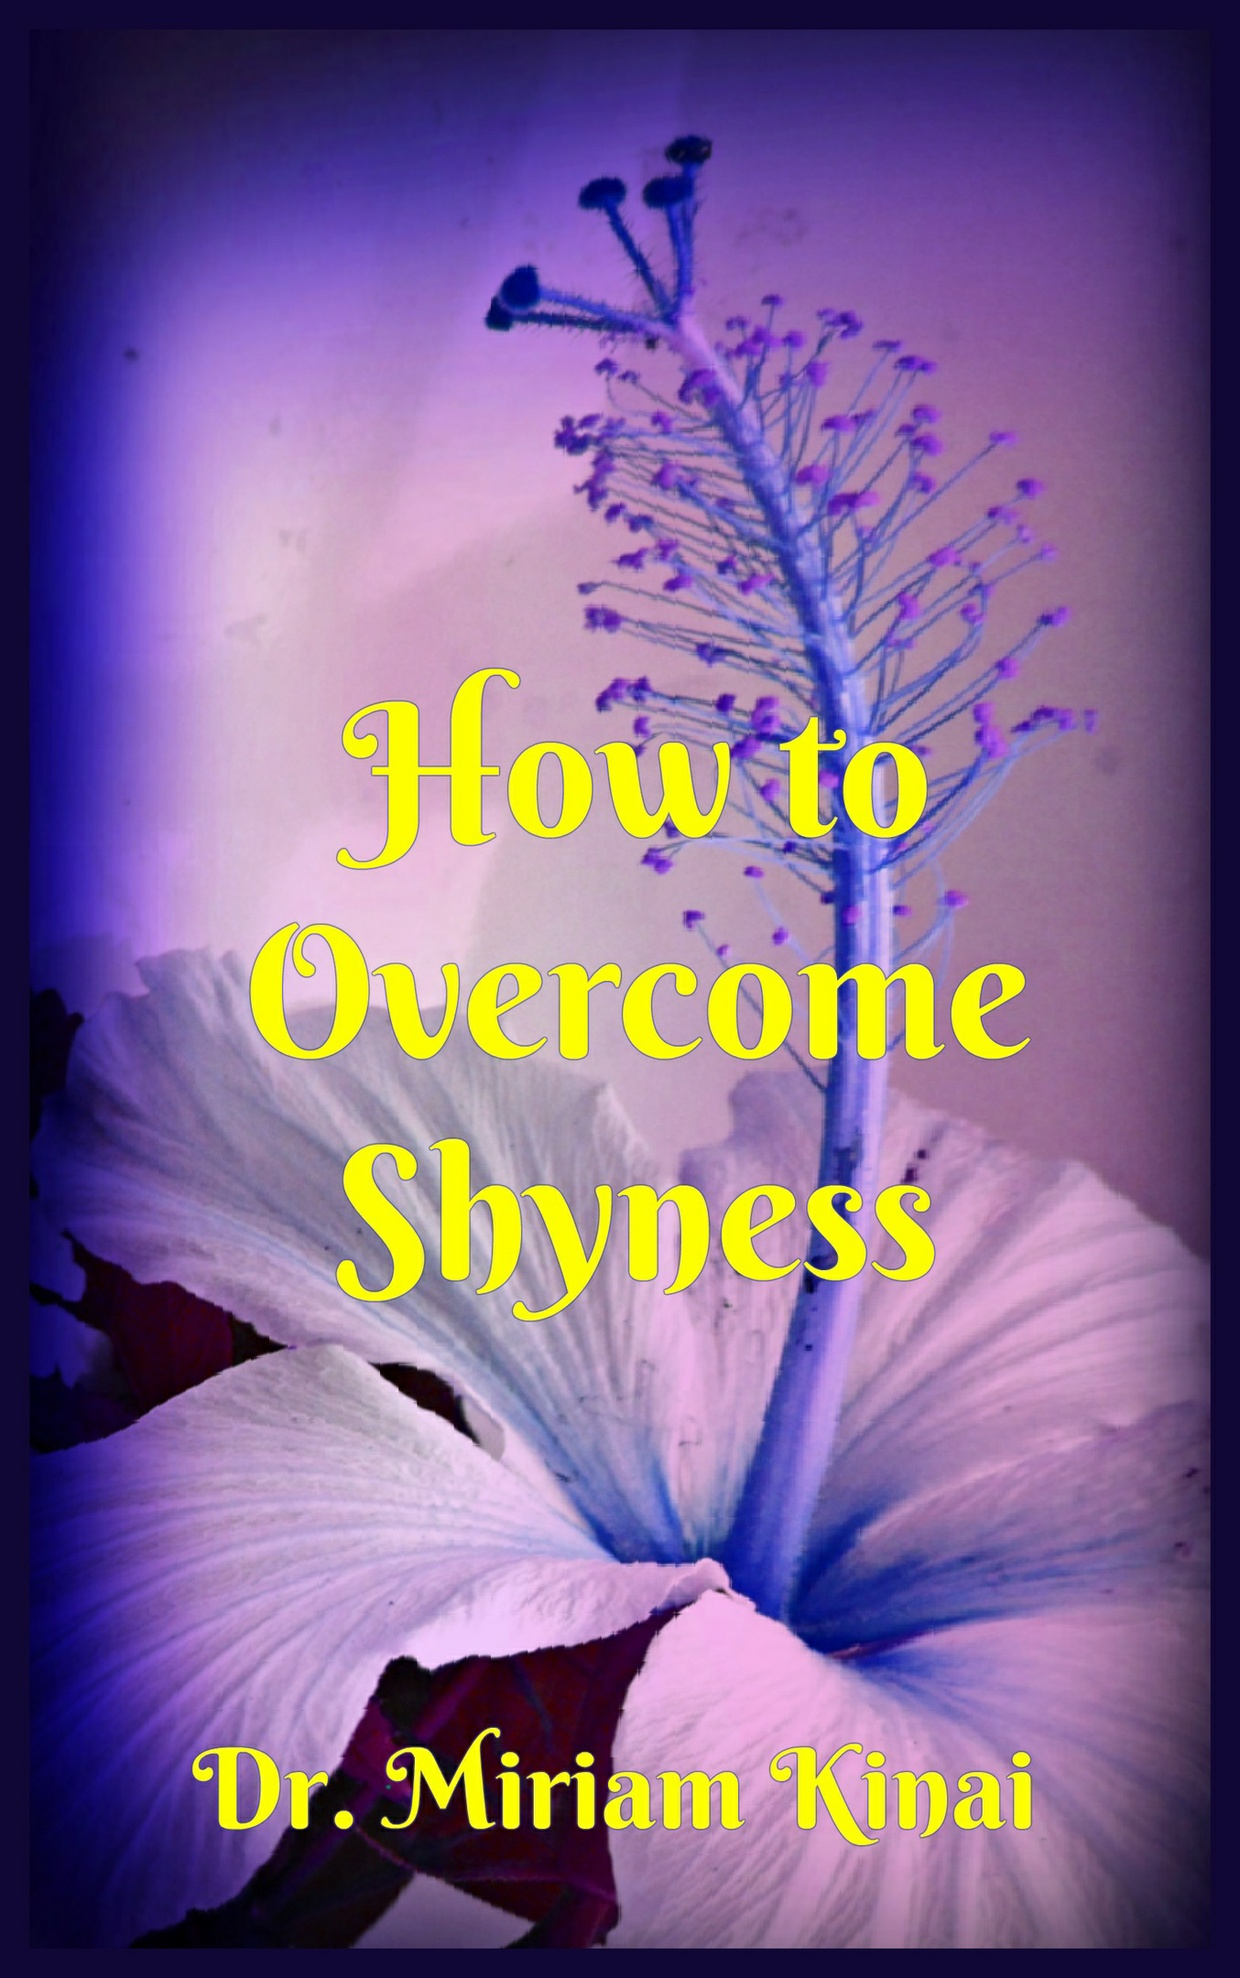 how to overcome shyness at work